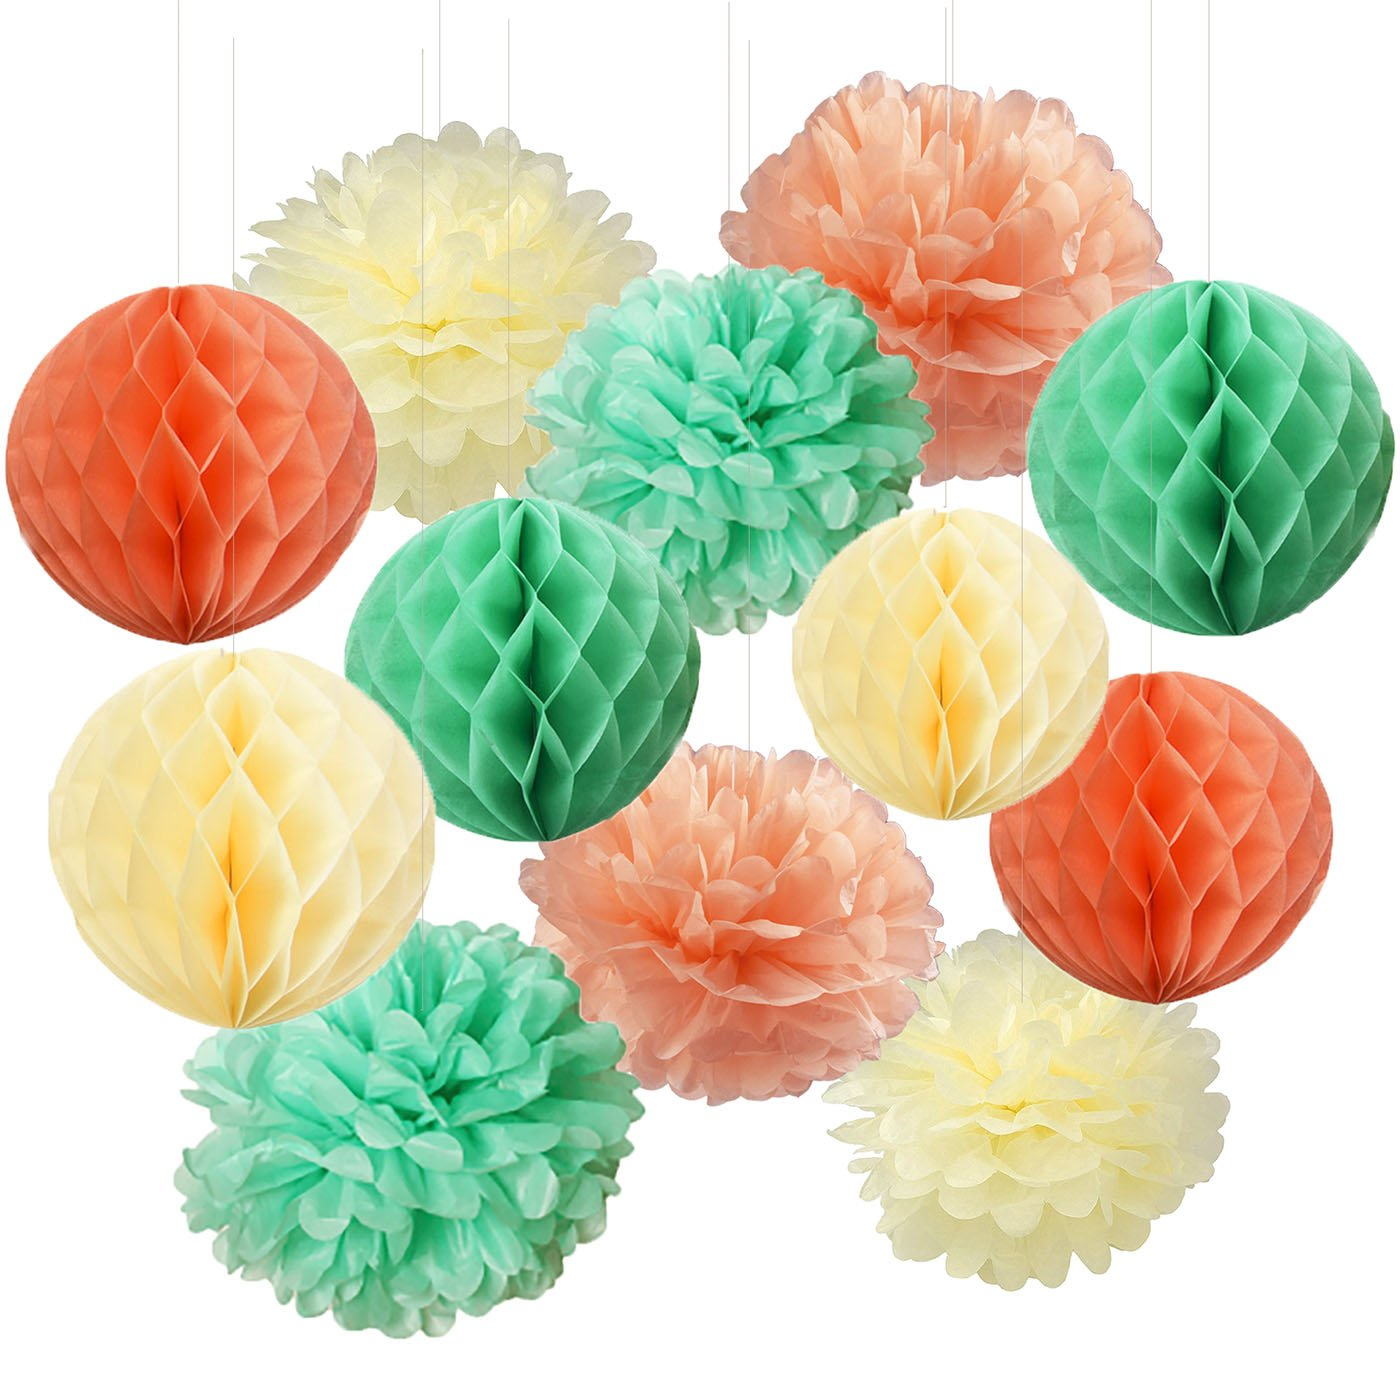 Furuix Mint Green Peach Cream Balls Honeycomb Tissue Papier de soie Papier Pom Pom Hanging décorations en papier pour Baby Shower Bridal Shower Décor de fête d'anniversaire de mariage Décor Décor Wall Hanging Décoration Mint Décor vert